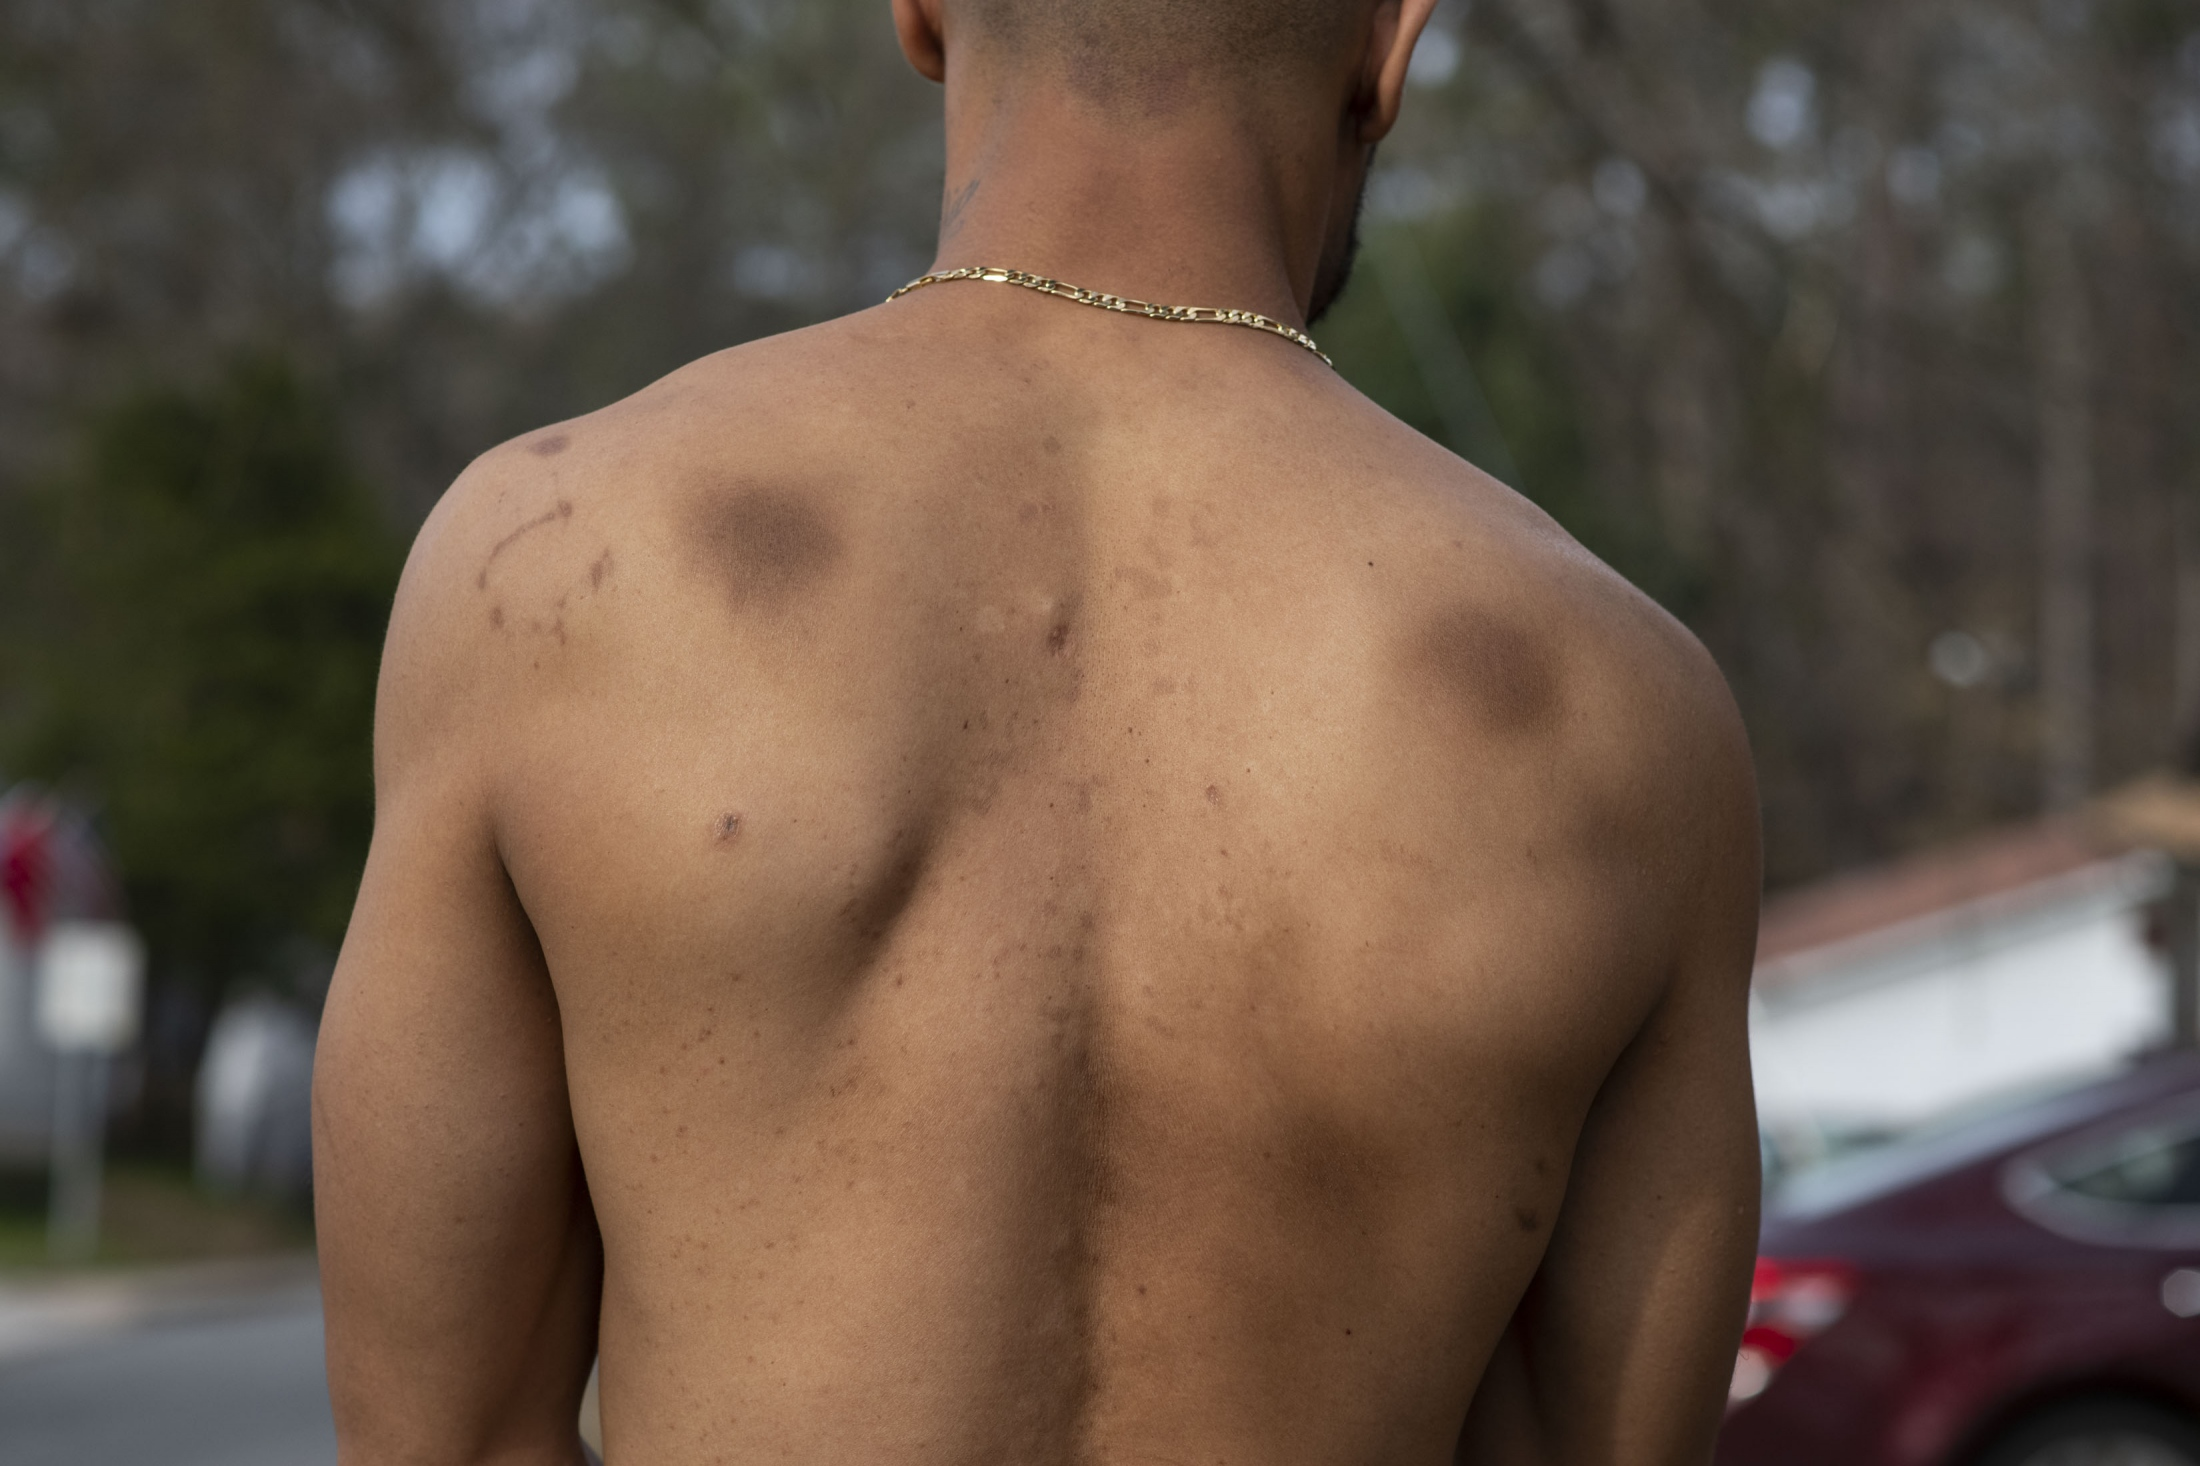 Morrice was shot three times in the back with each bullet lodged in him—one barely missing his heart, the other next to his spine, and the last near his lung. The bruises on his shoulders are from bench-pressing while in prison.